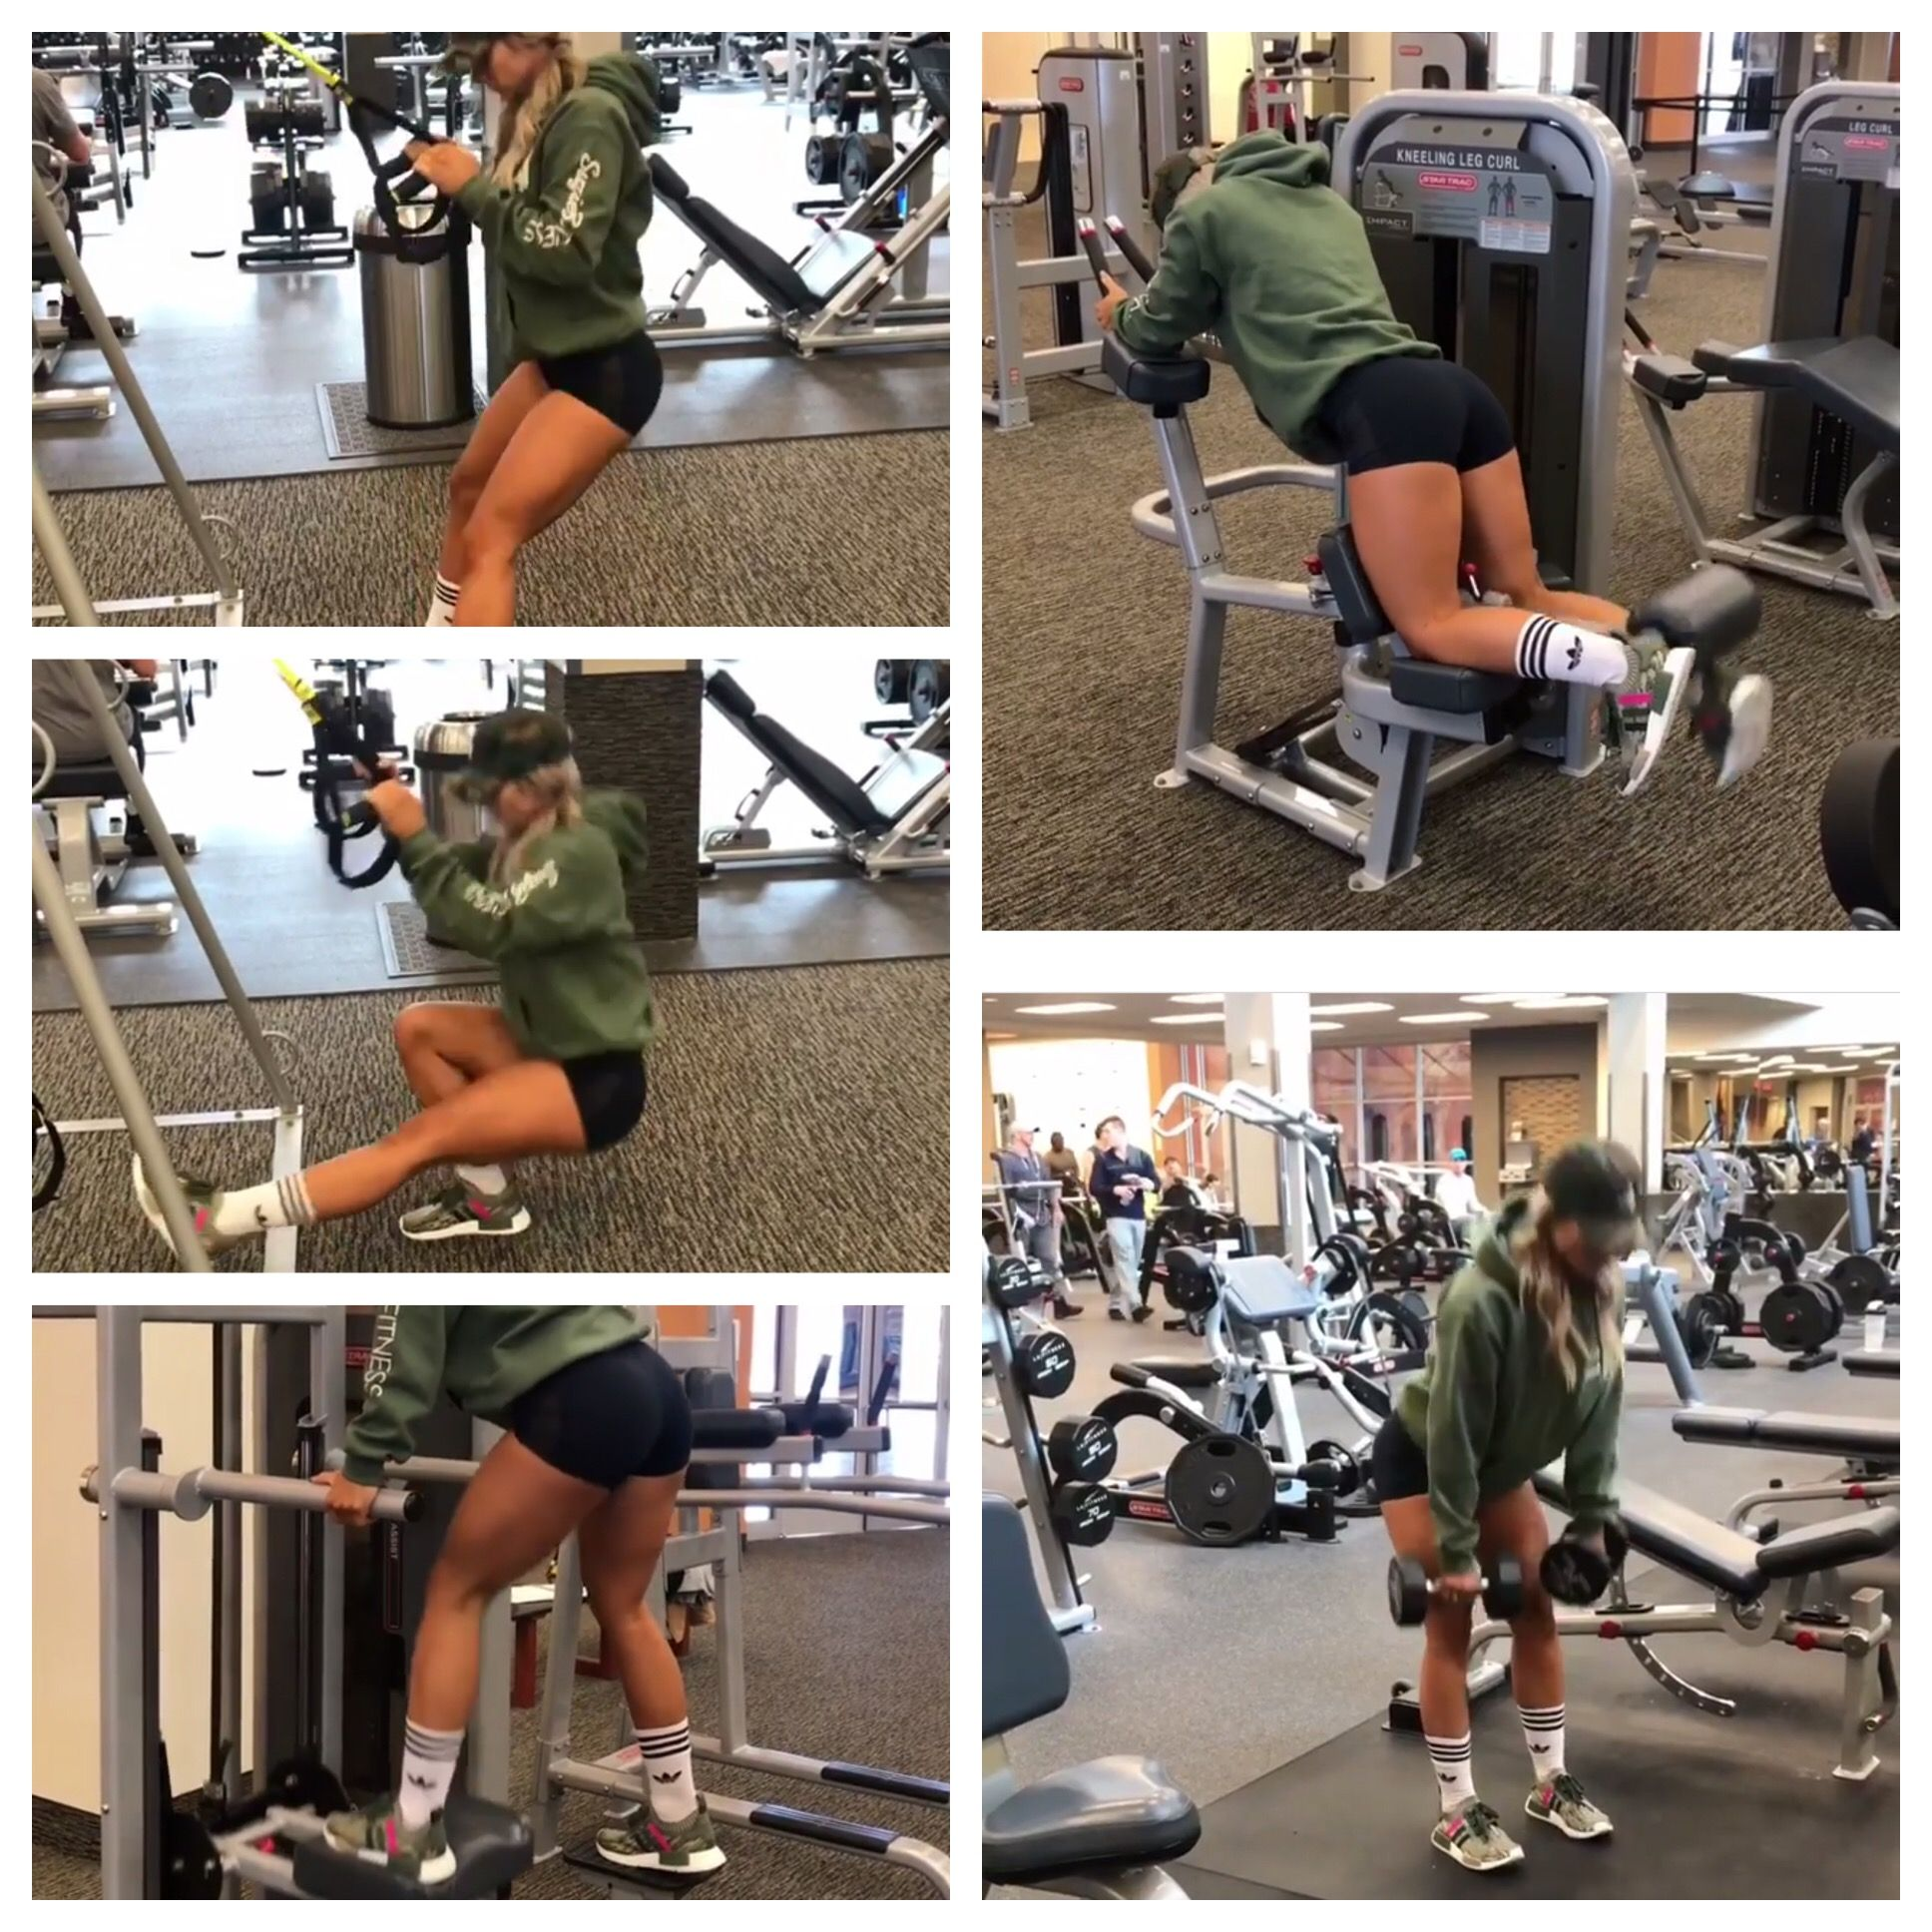 Leg workout part 2: Superset Sissy squats & Assisted pistol